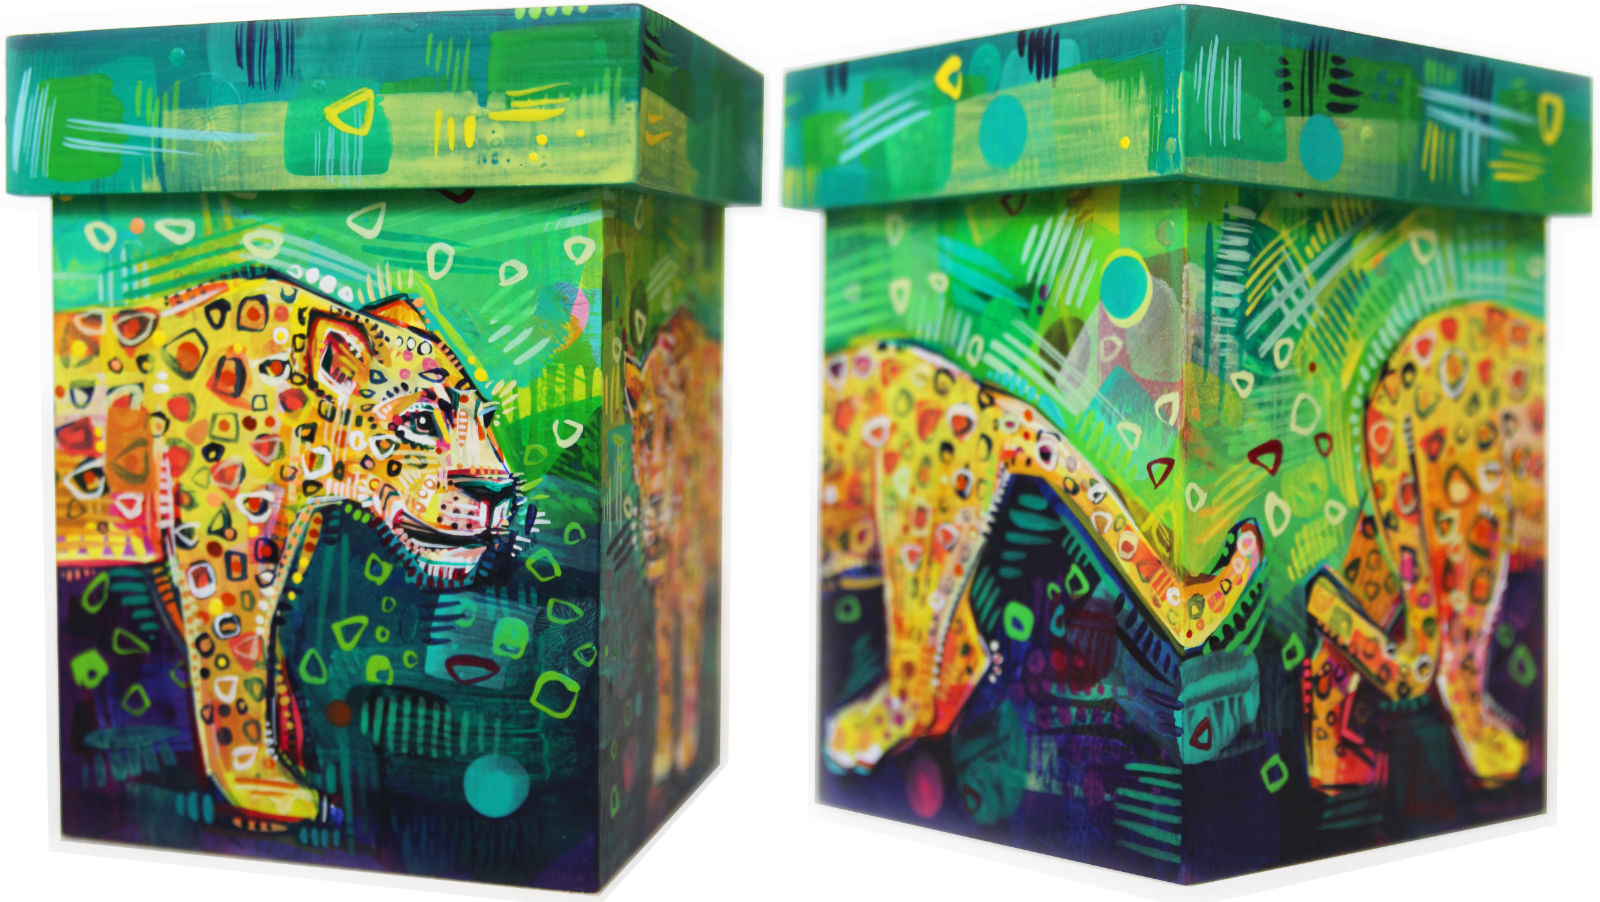 two jaguars painted on a box